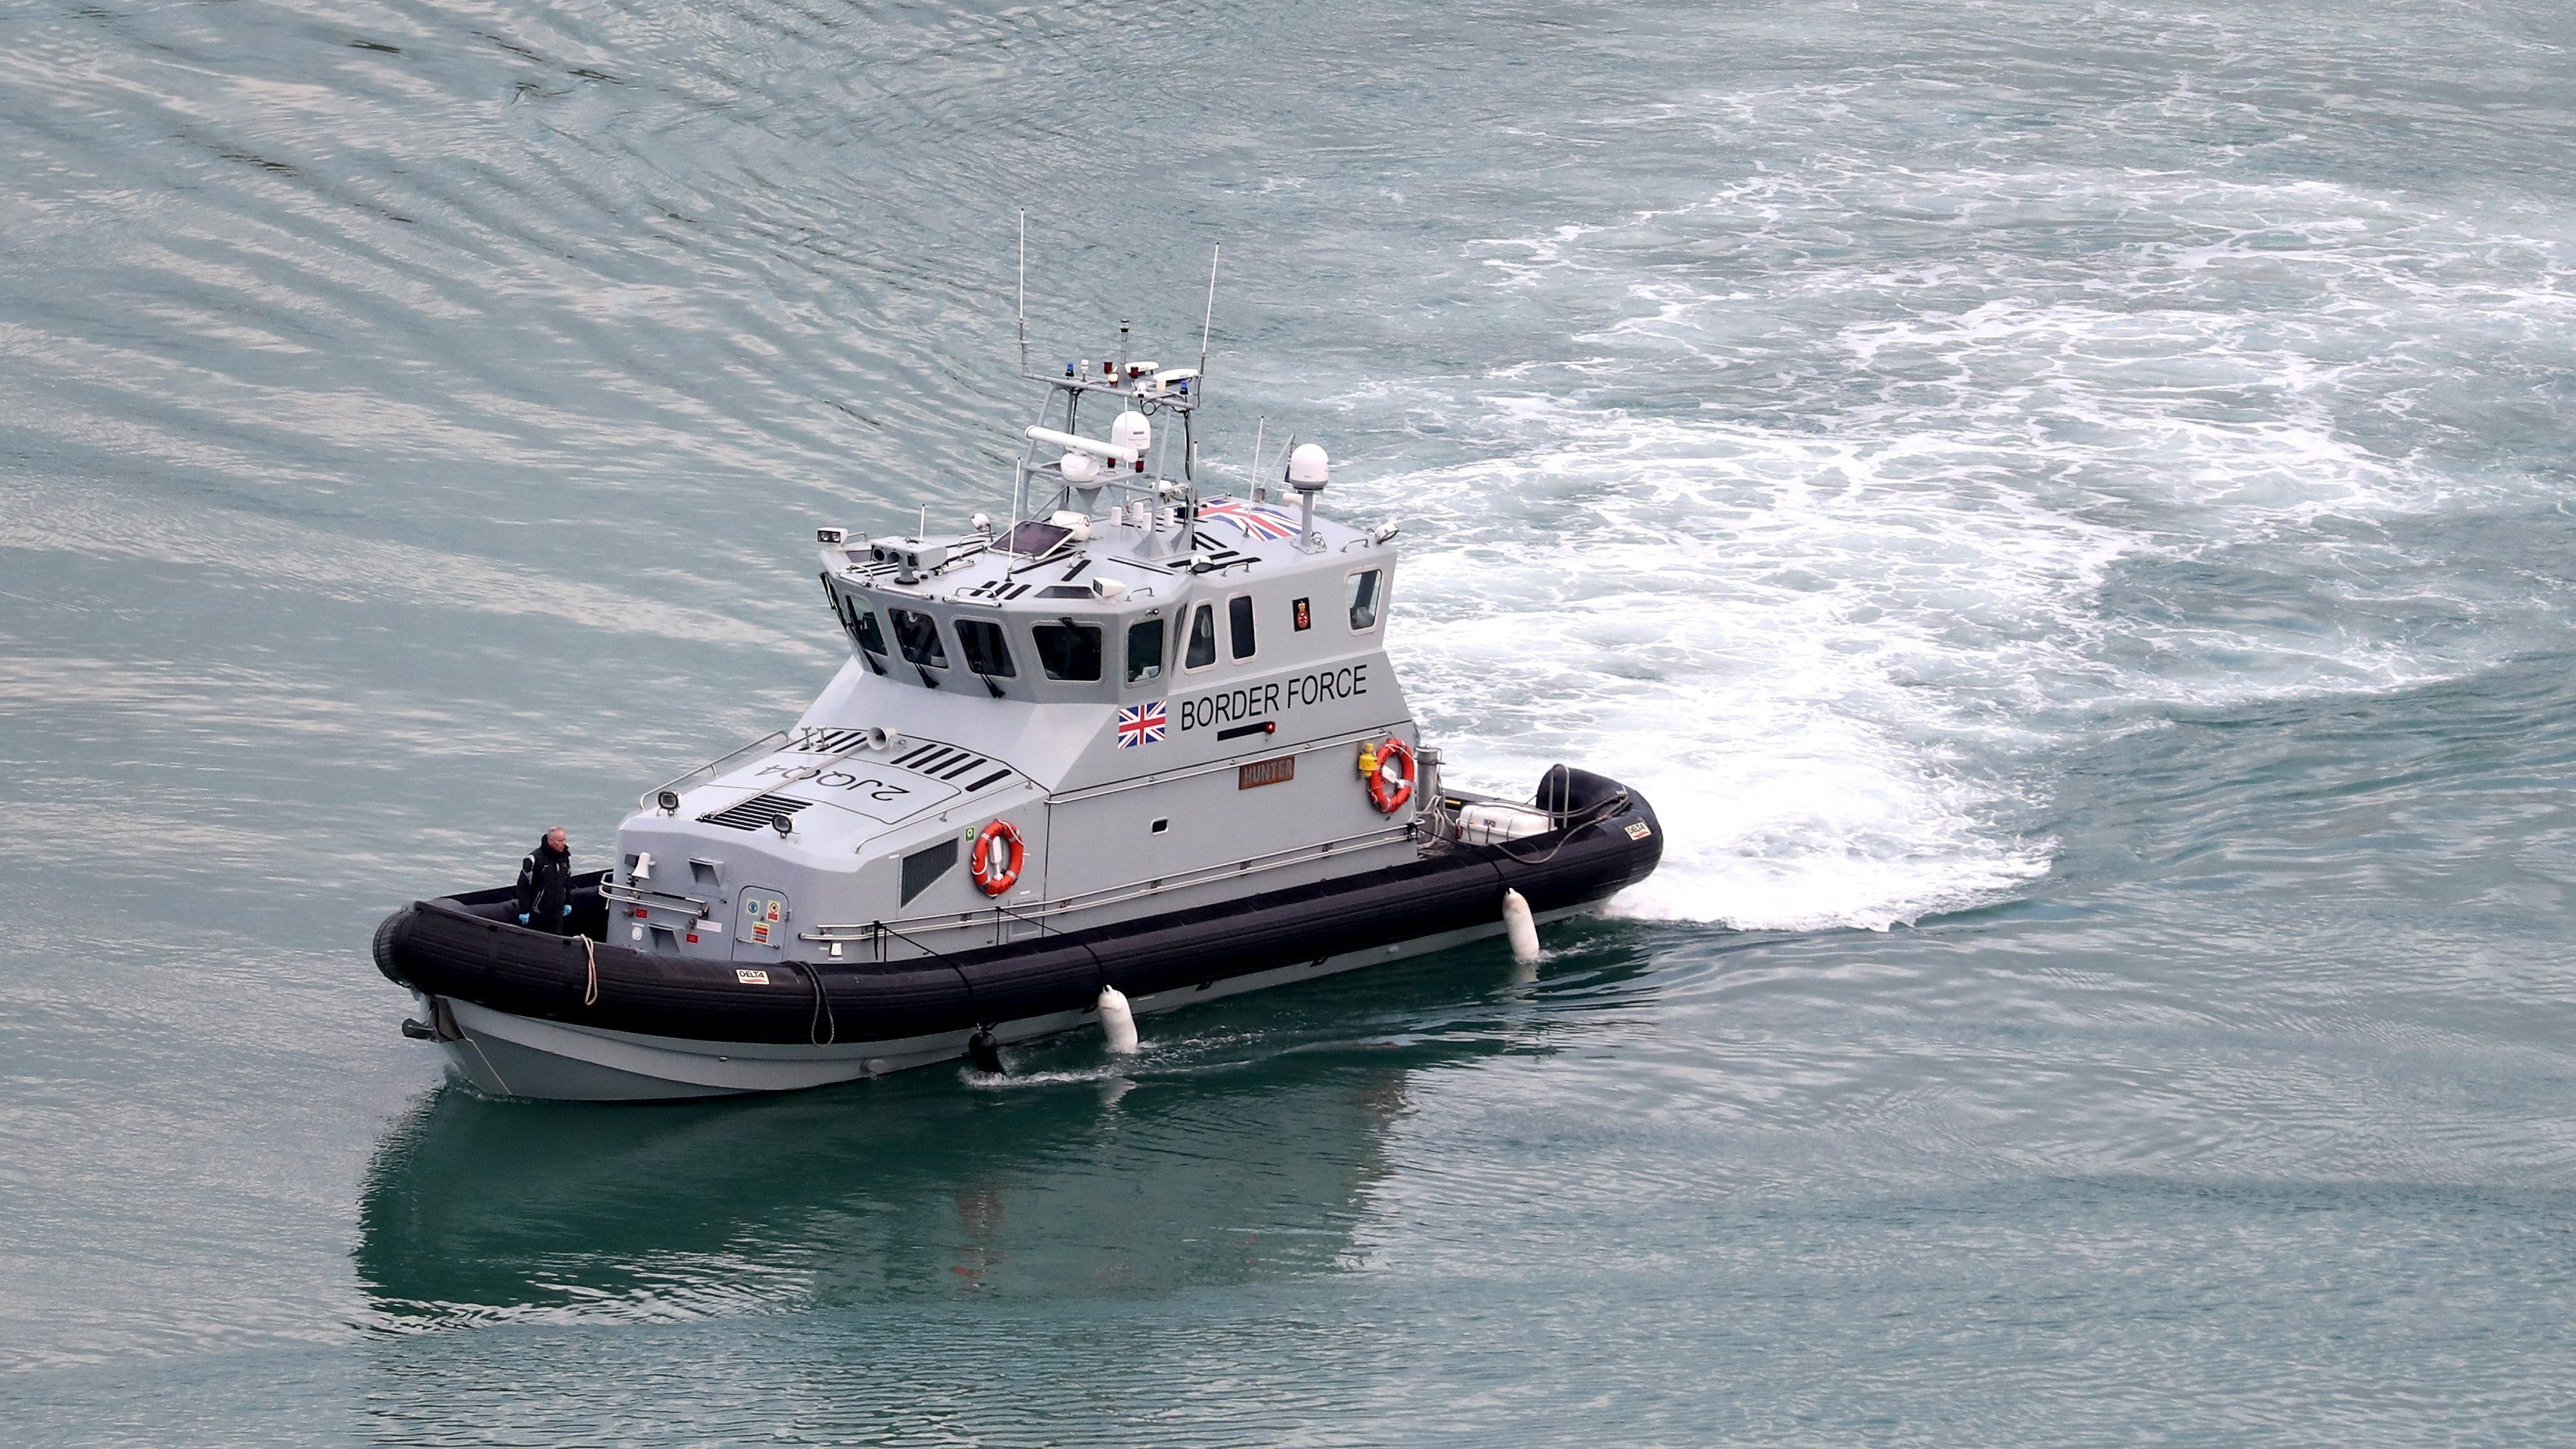 Three migrant boats land in Kent after crossing Channel